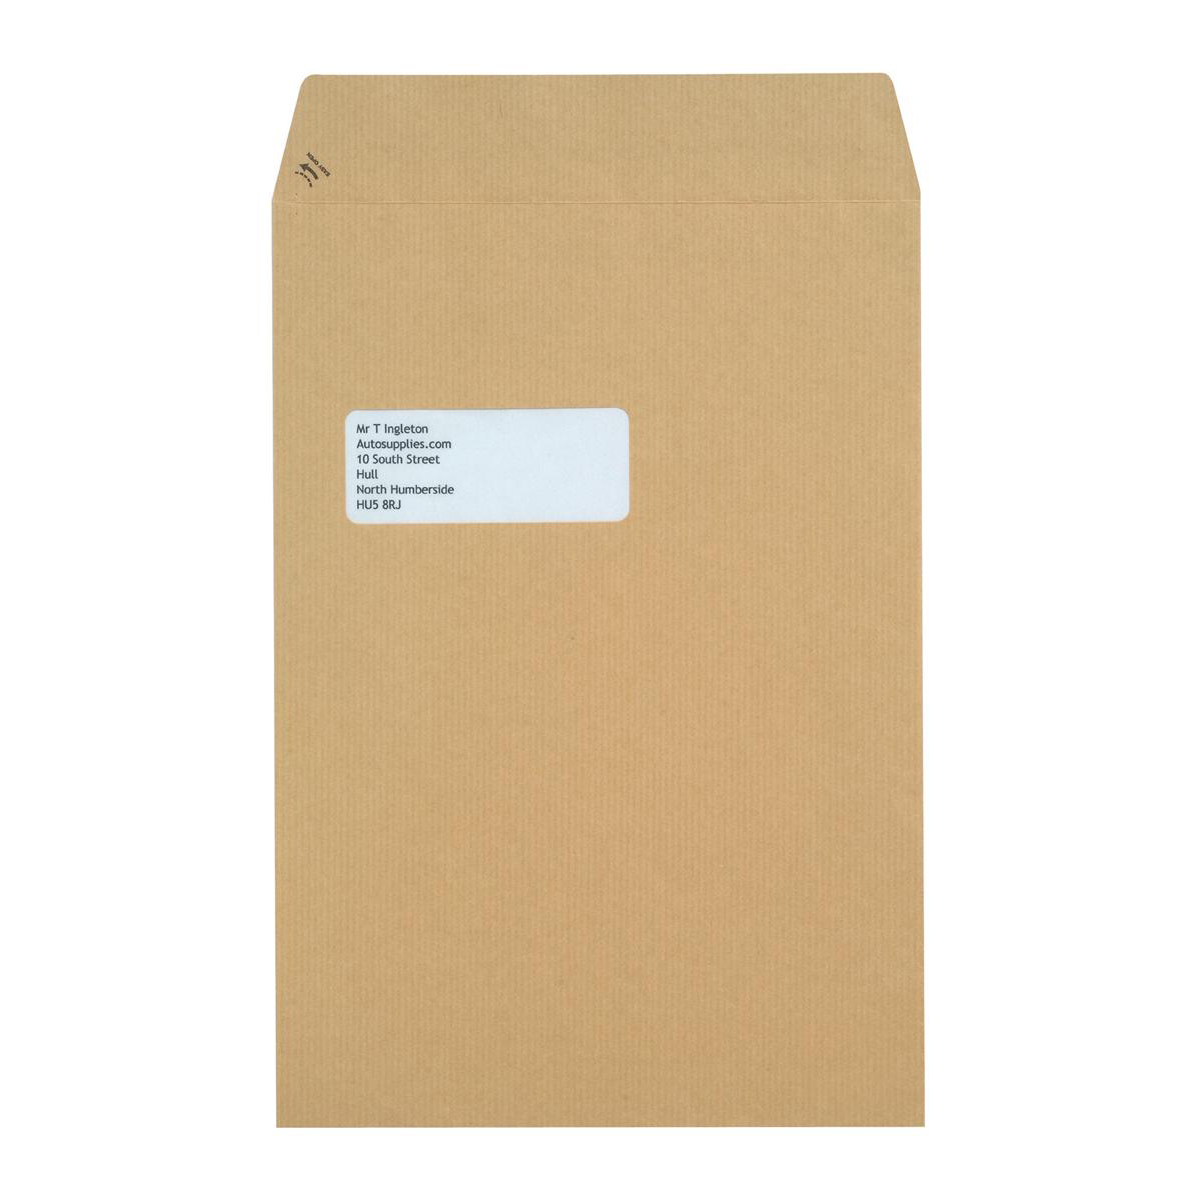 New Guardian Envelopes Pocket Peel & Seal Window 130gsm C4 324x229mm Manilla Ref F24203 Pack 250